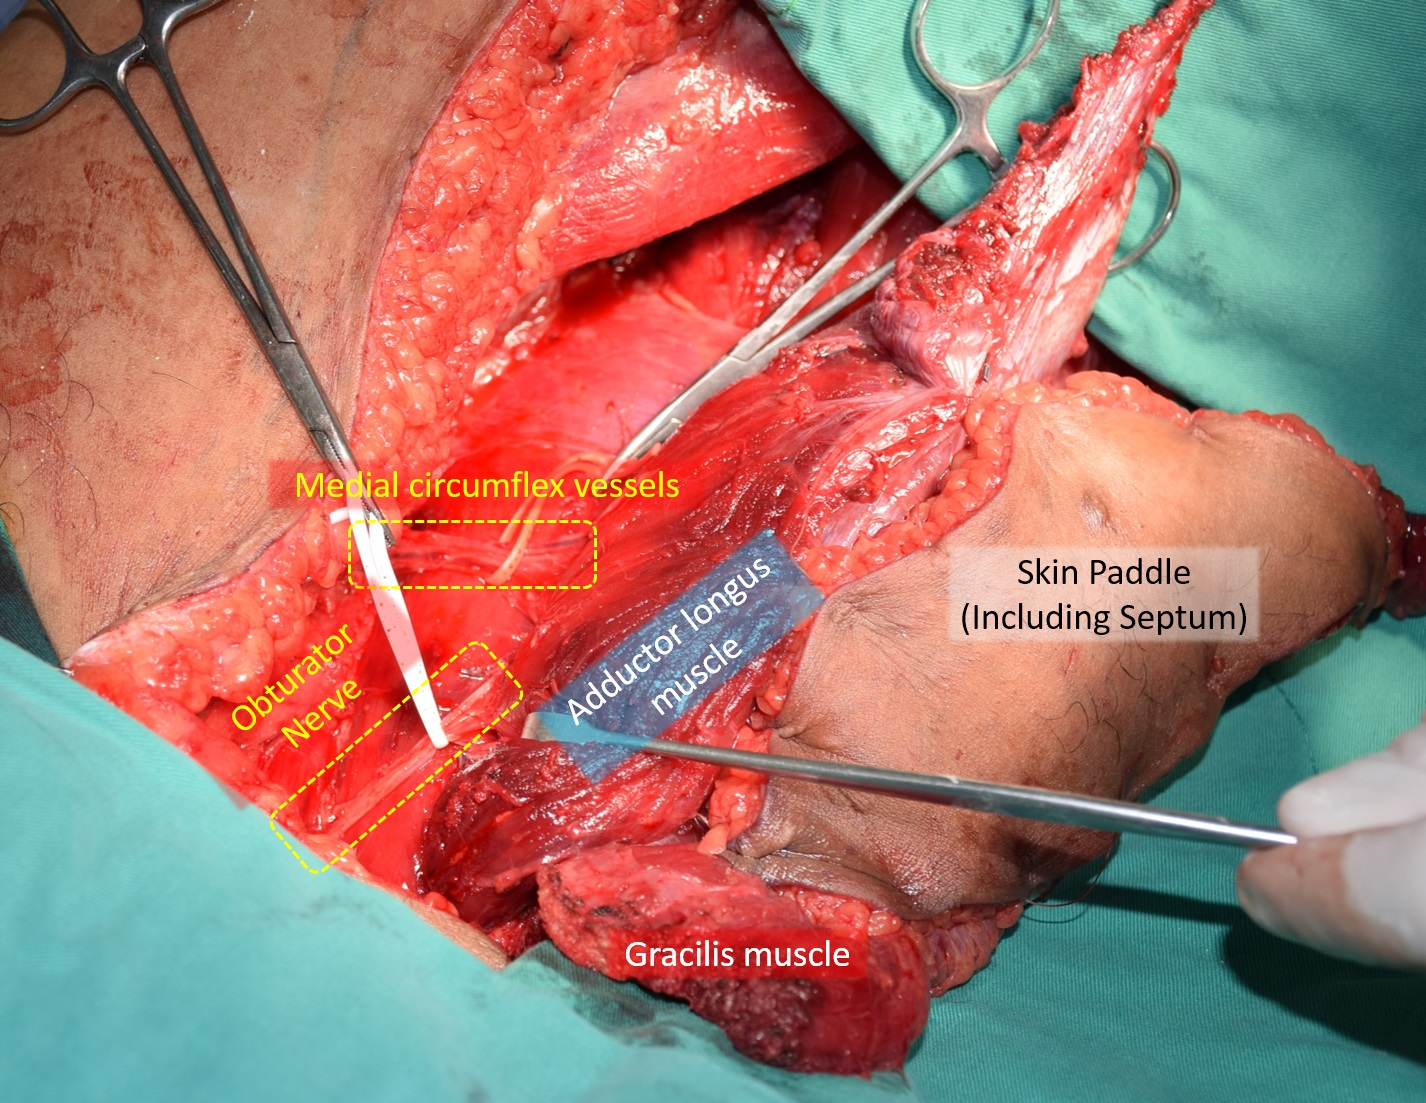 Double Functioning Free Muscle Transfer as a Salvage Procedure for Brachial Plexus Injury After Failed Nerve Transfer